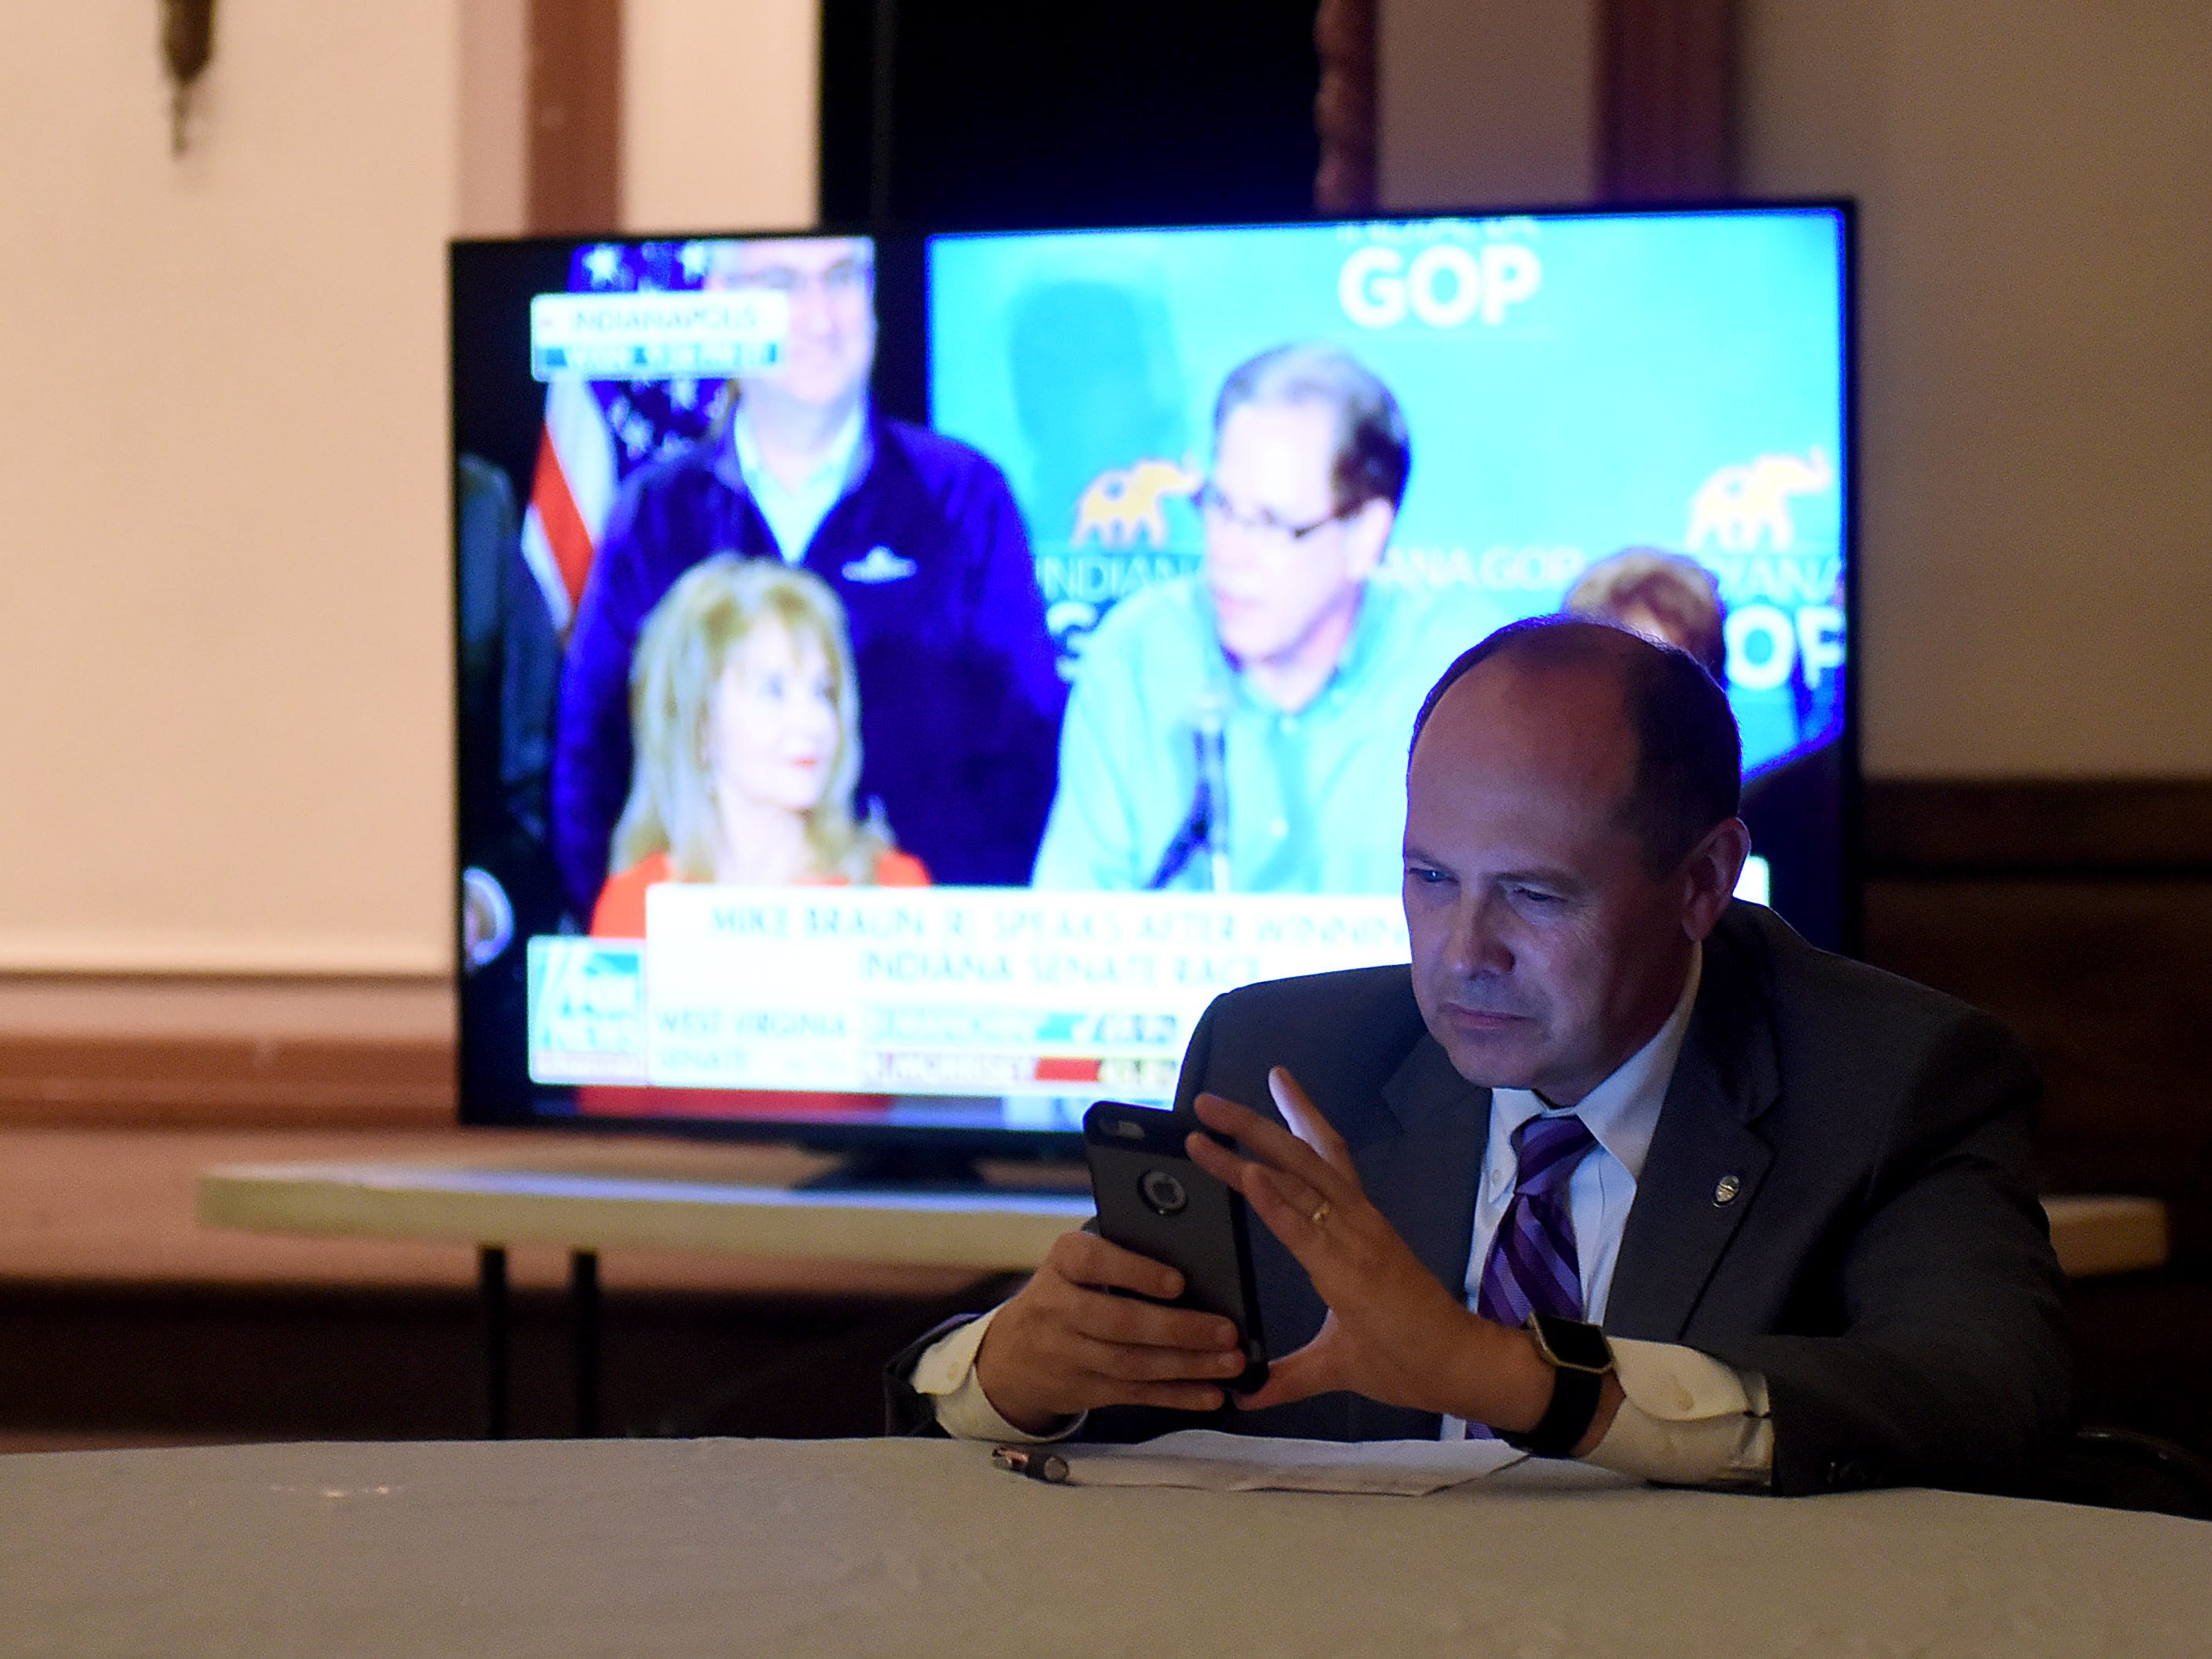 Ohio Sen. Jay Hottinger follows election results on his phone after winning his 12th election in his political career on Tuesday, Nov. 6, 2018.